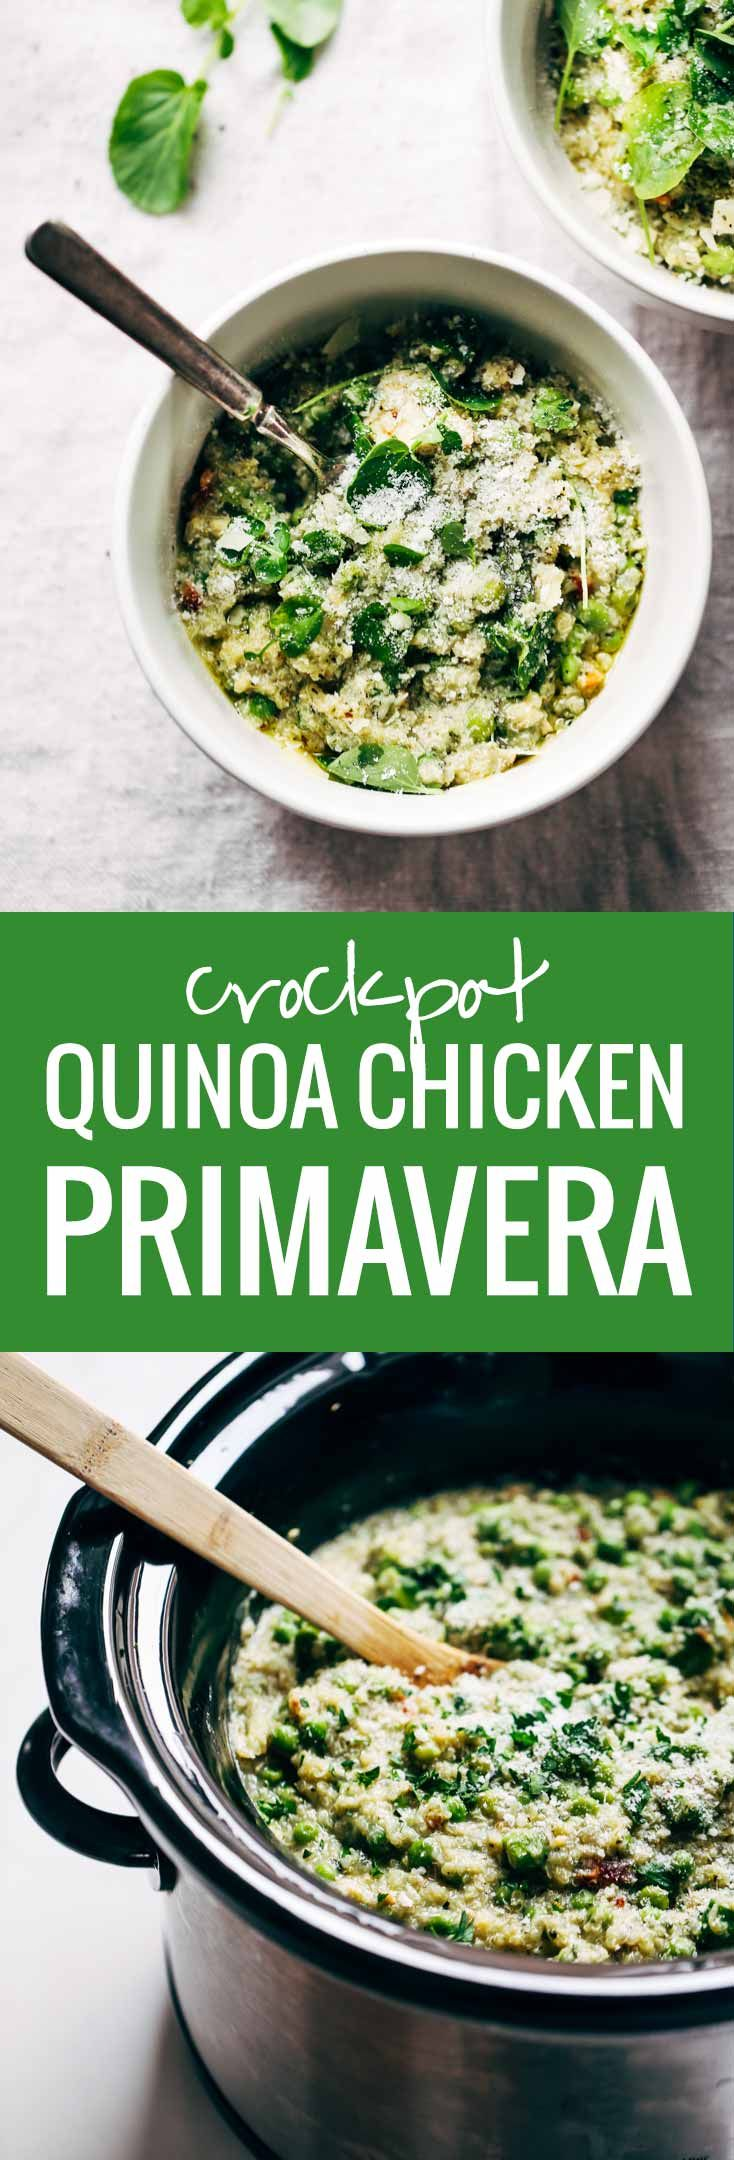 This Crockpot Quinoa Chicken Primavera is both healthy and comforting  plus it makes for a super easy dinner  Loaded with peas  asparagus  quinoa  garlic  parmesan  and chicken  YUM